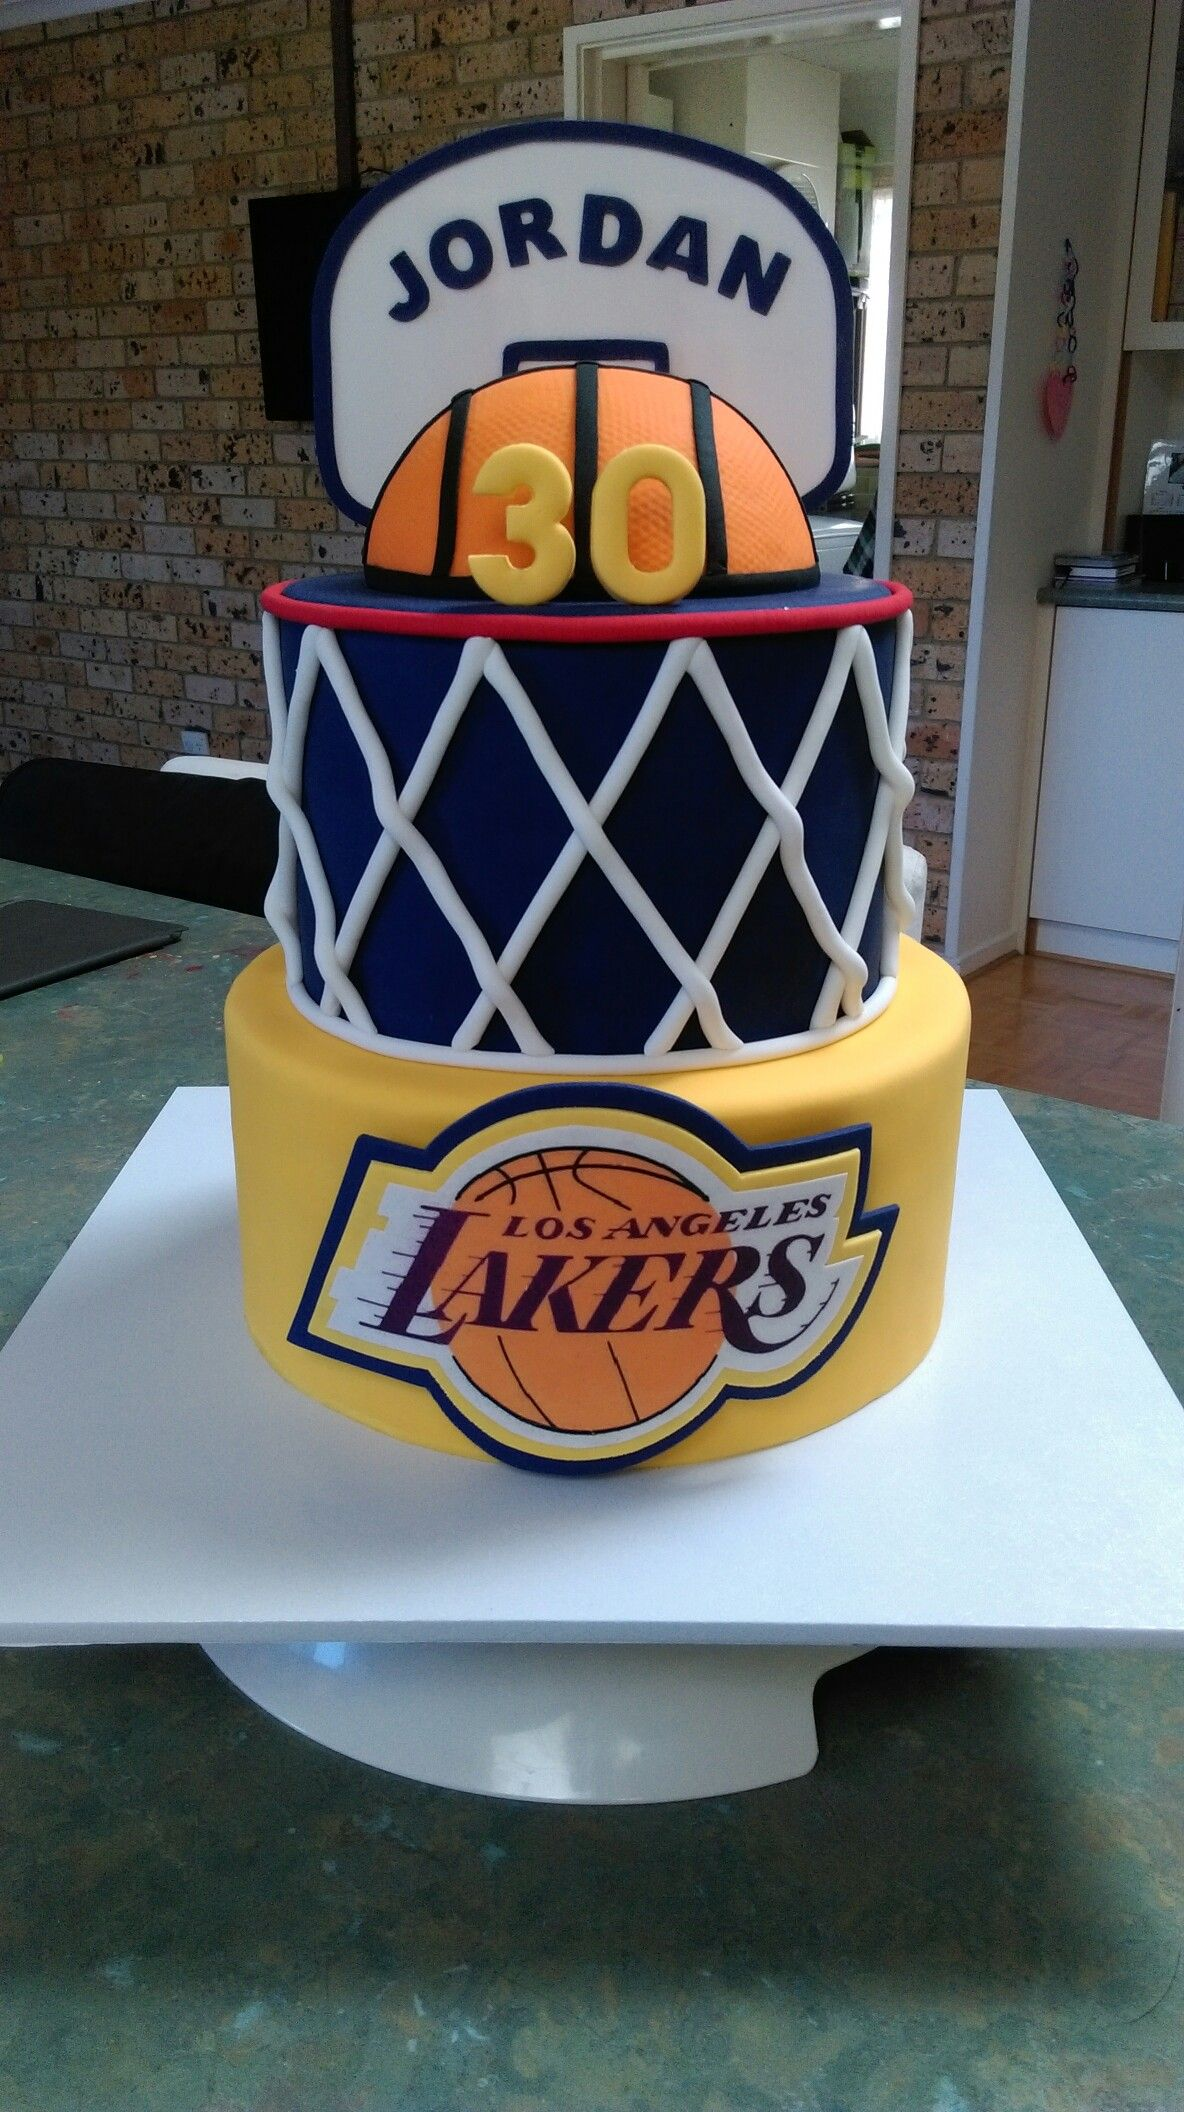 Miraculous La Lakers Cake With Images Basketball Cake Basketball Funny Birthday Cards Online Sheoxdamsfinfo